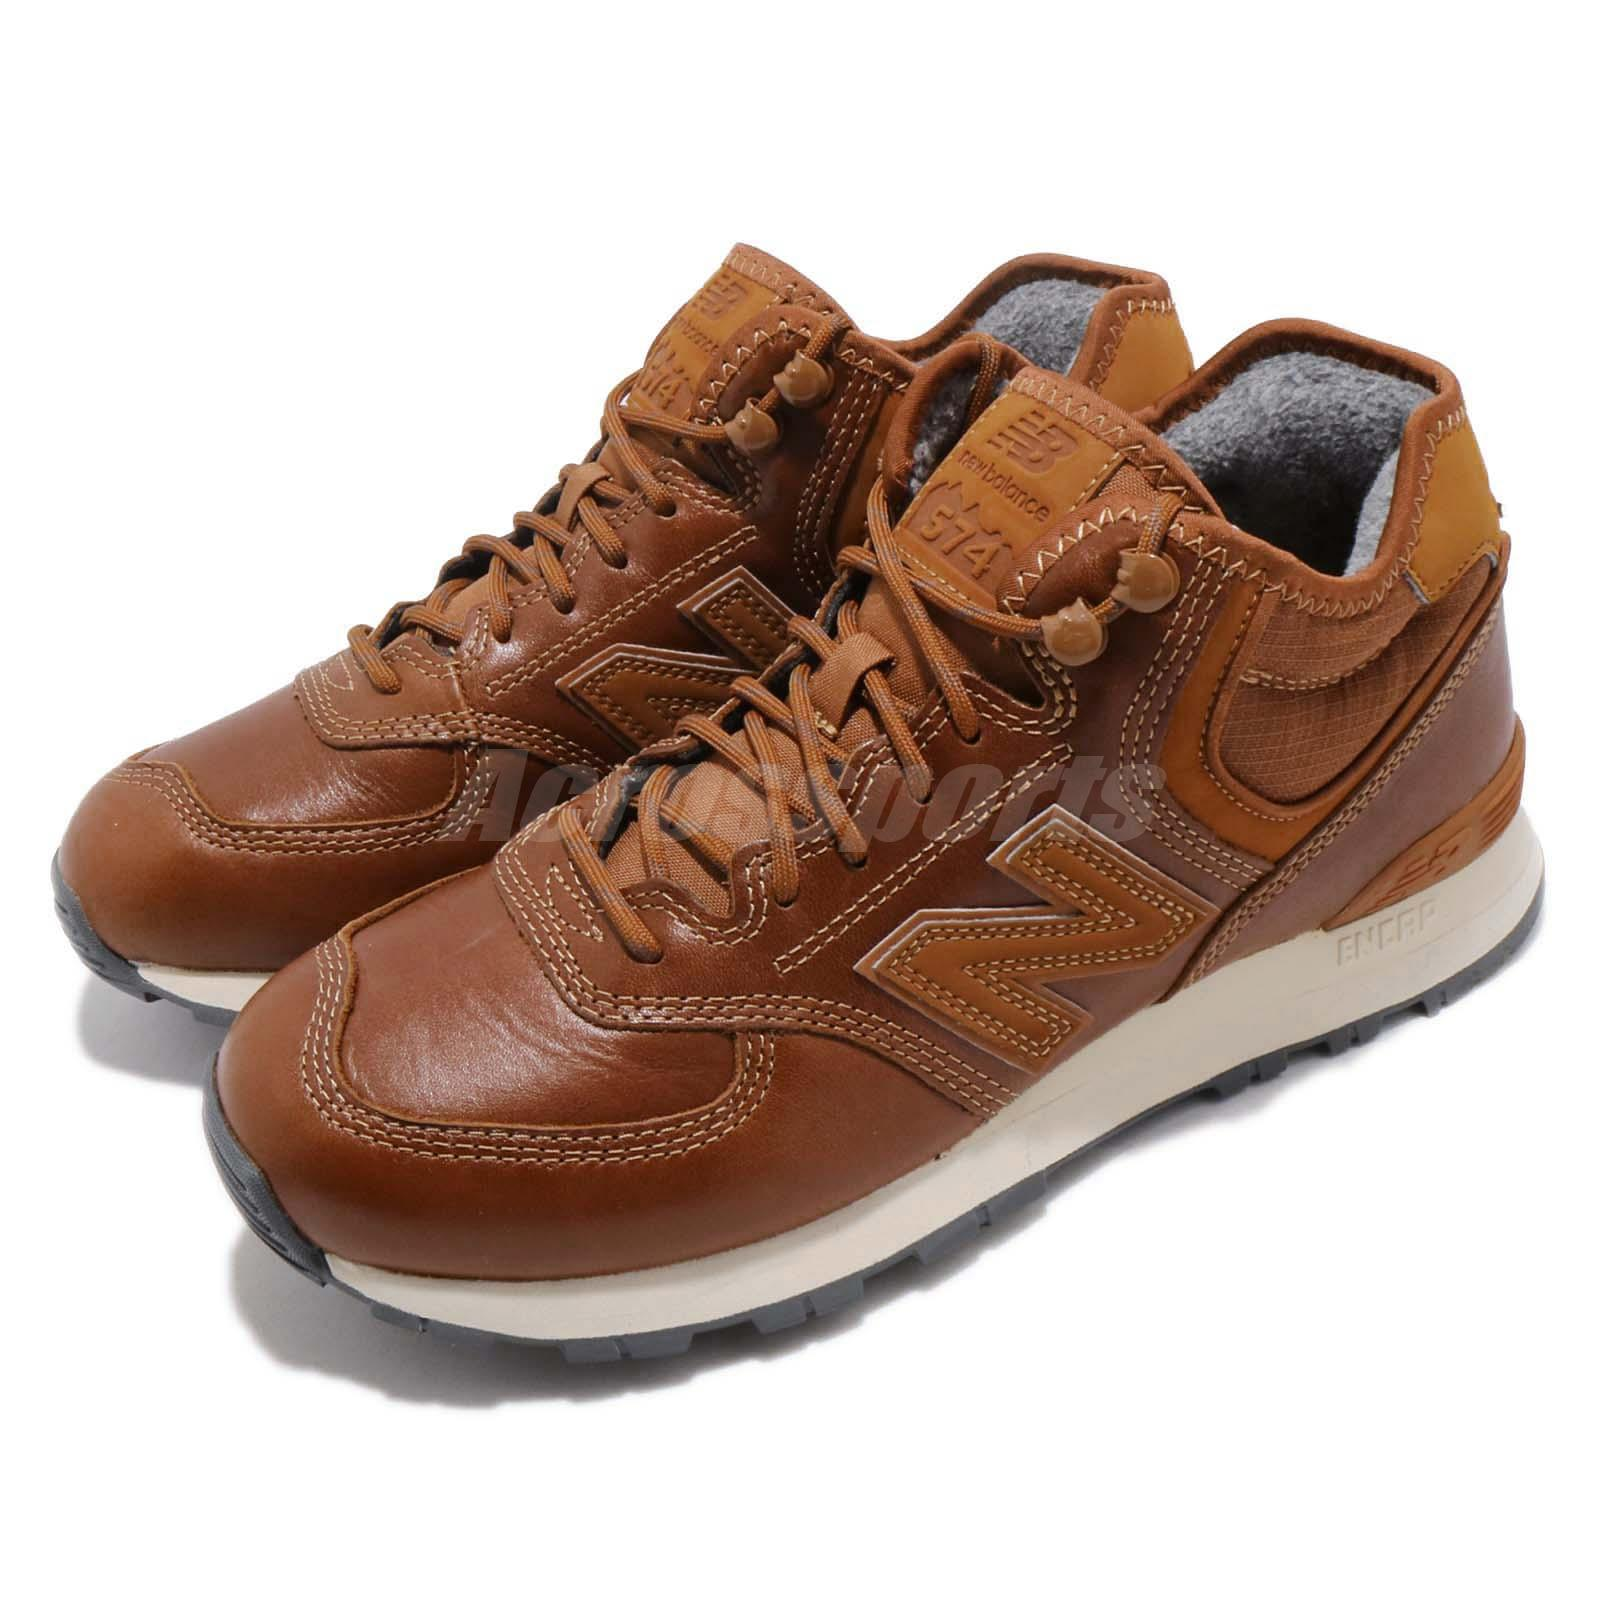 buy online e544a ebcad Details about New Balance MH574OAD D 574 Brown Men Lifestyle Casual Shoes  Sneakers MH574OADD